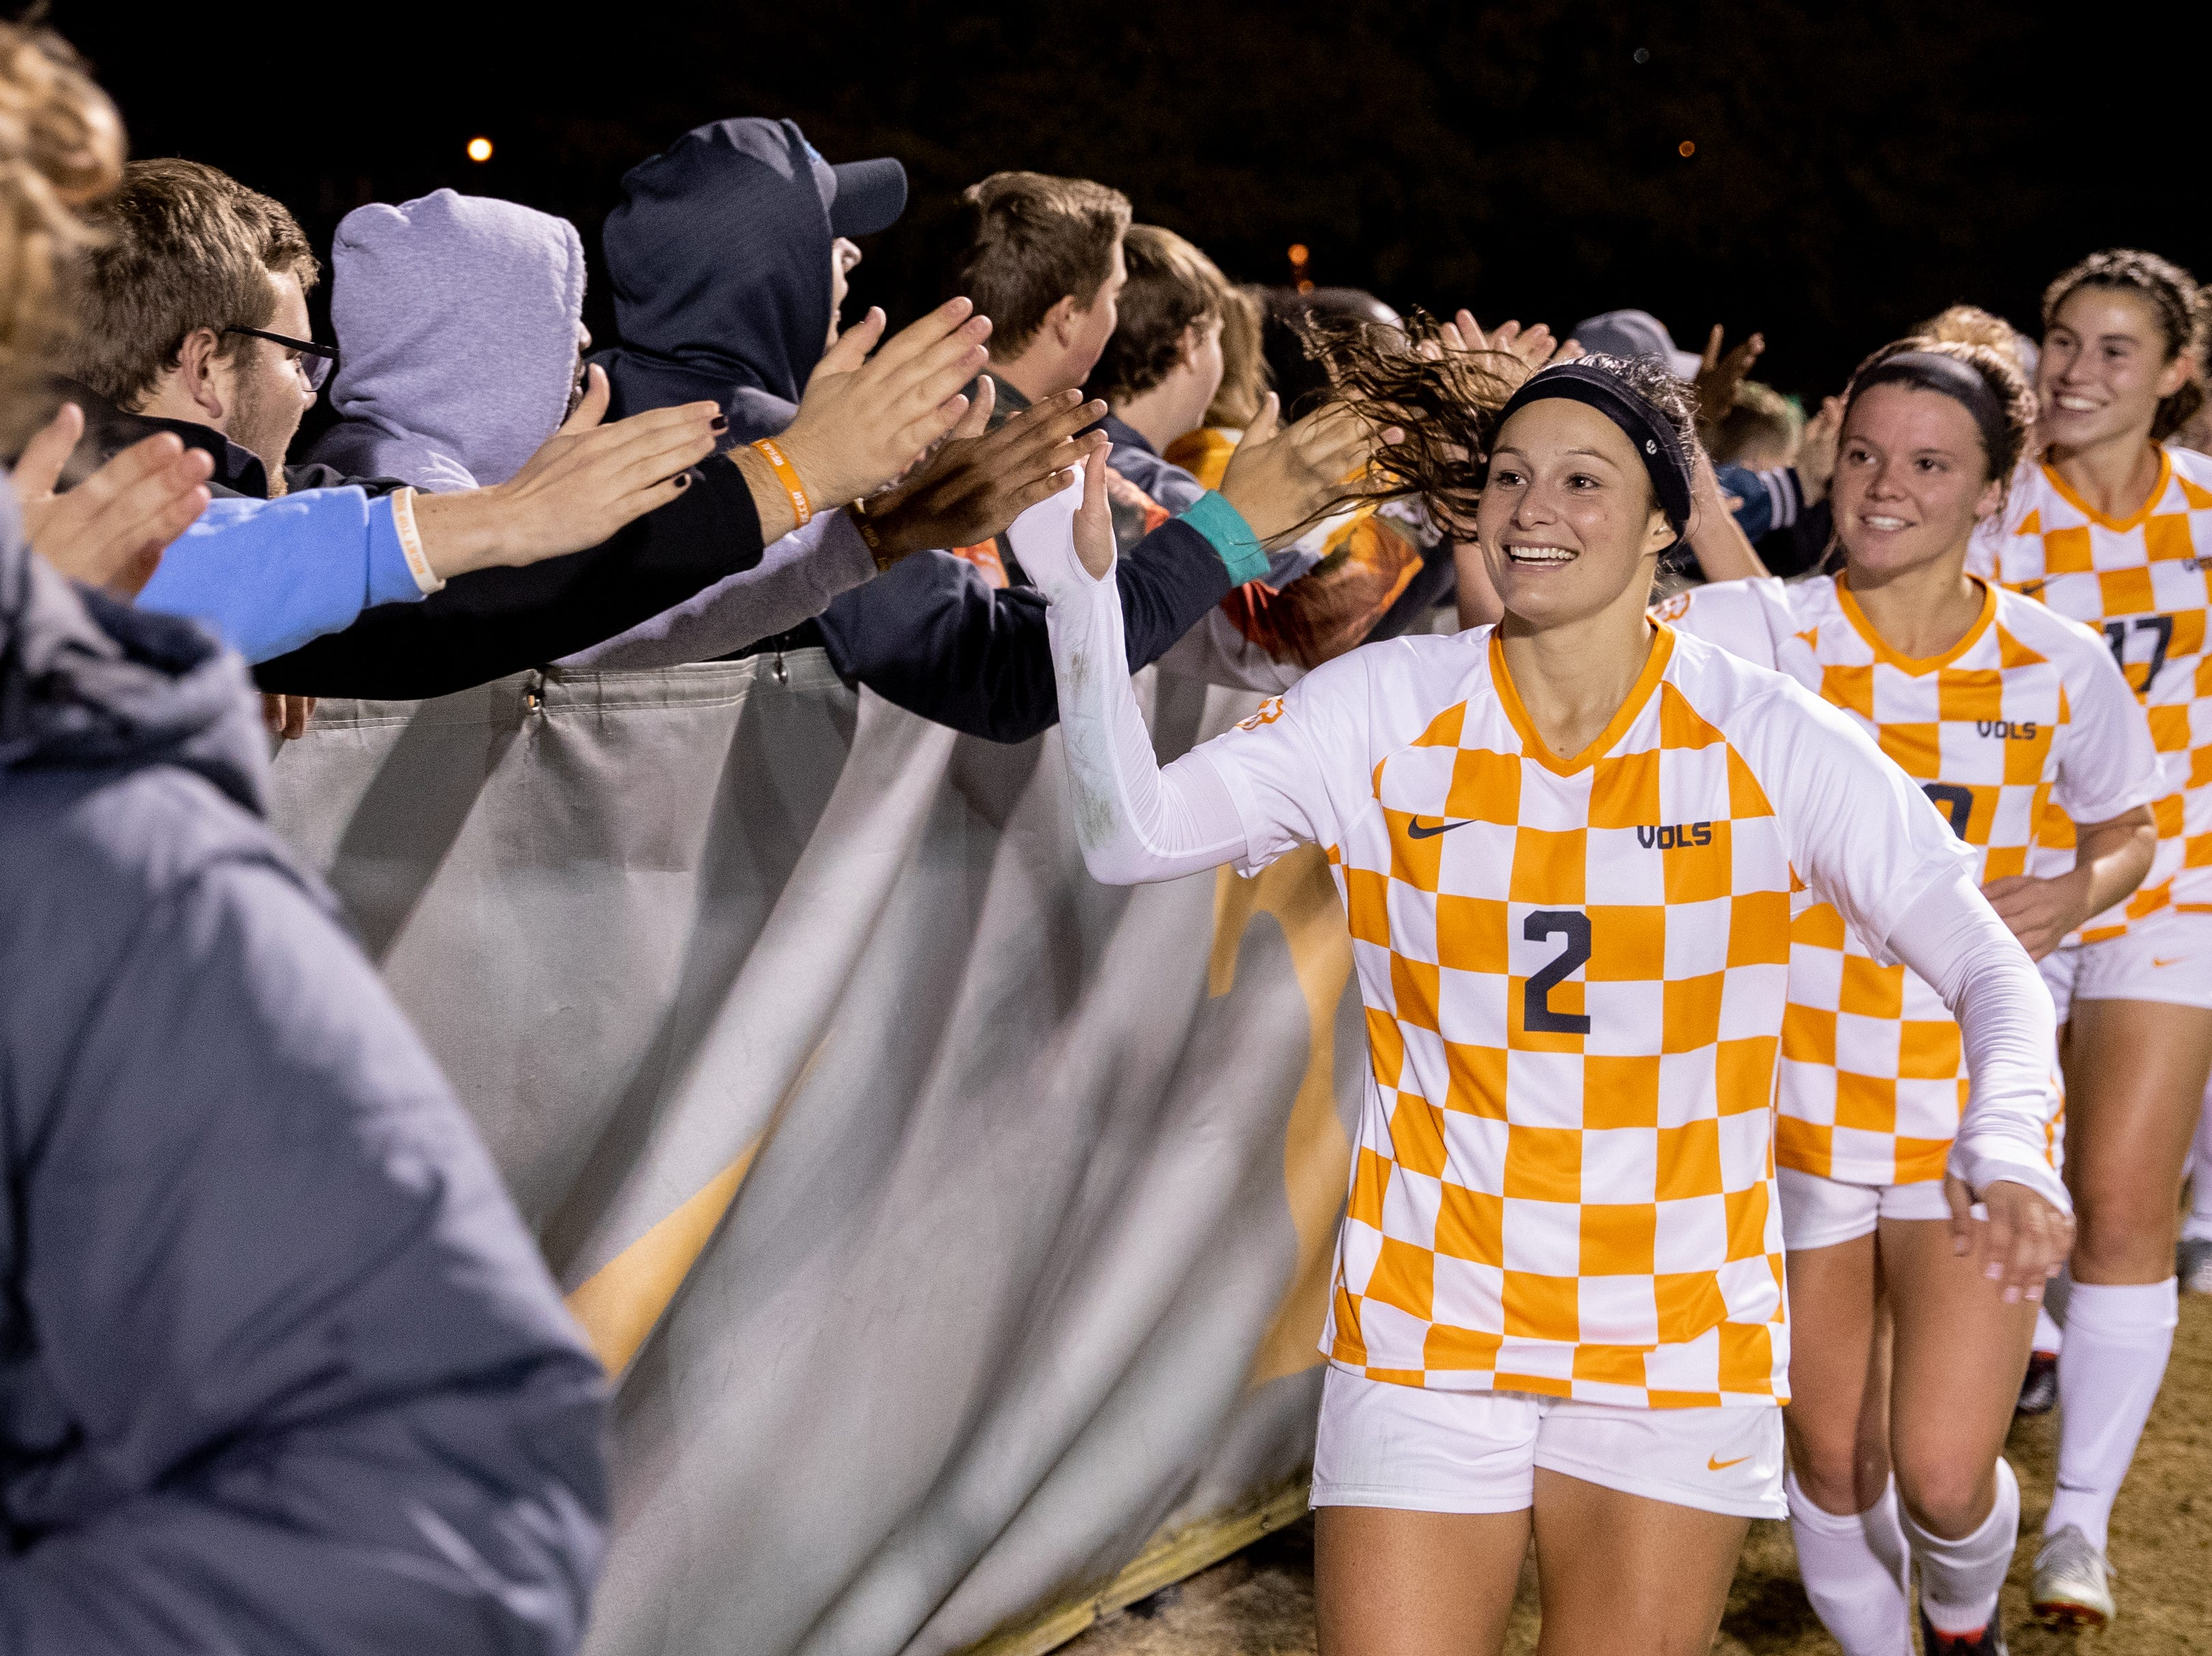 Tennessee senior Danielle Marcano leads her teammates after the Lady Vols defeated Texas A&M 3-0 in the quarterfinals of the NCAA women's soccer tournament at Regal Stadium on Sunday, Nov. 18, 2018.